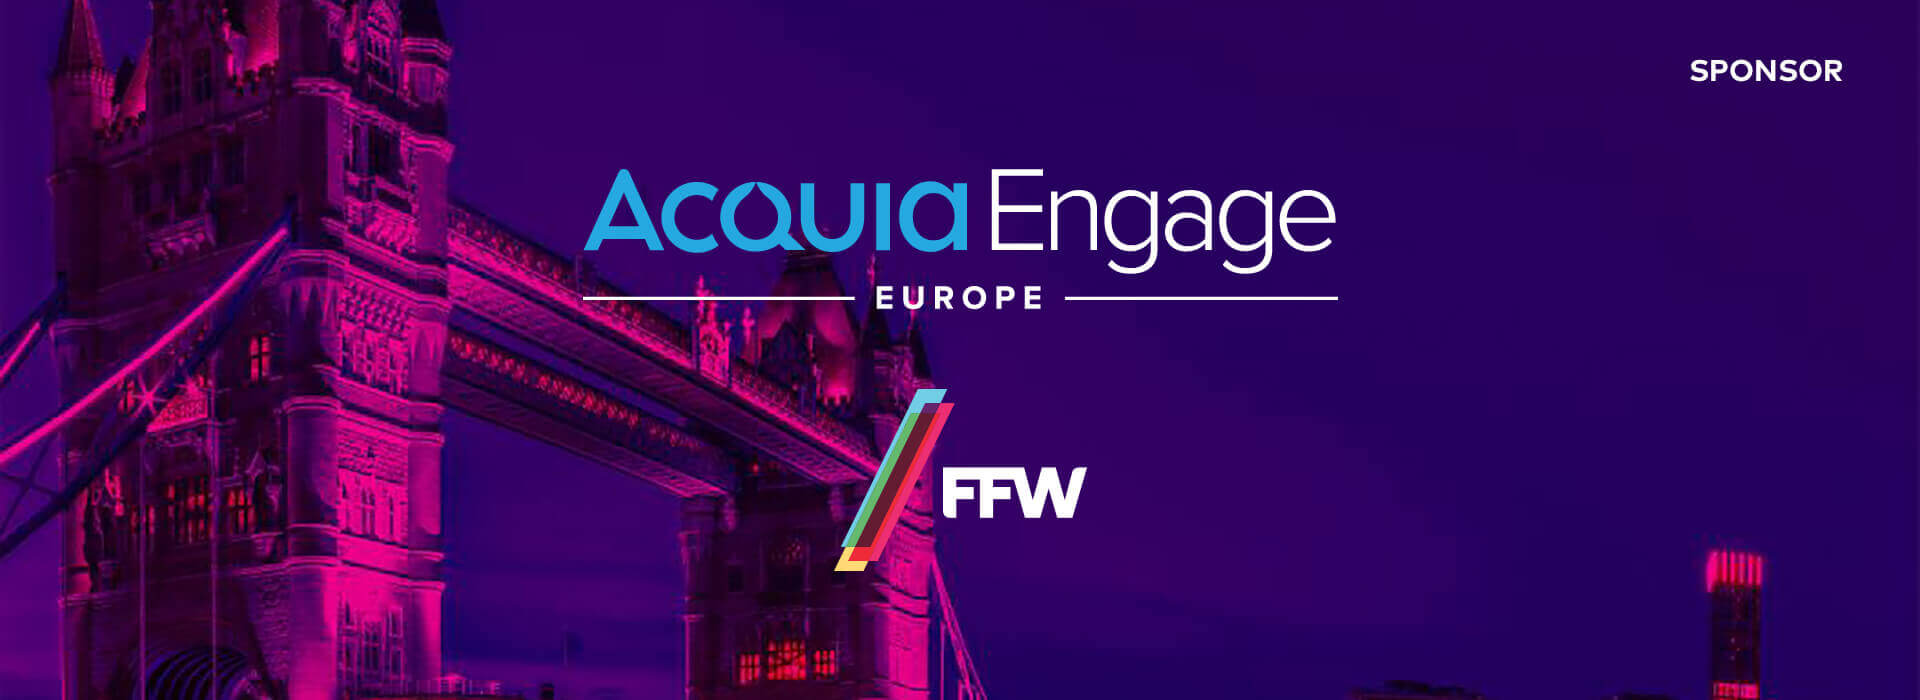 Header of Acquia Engage Europe blog